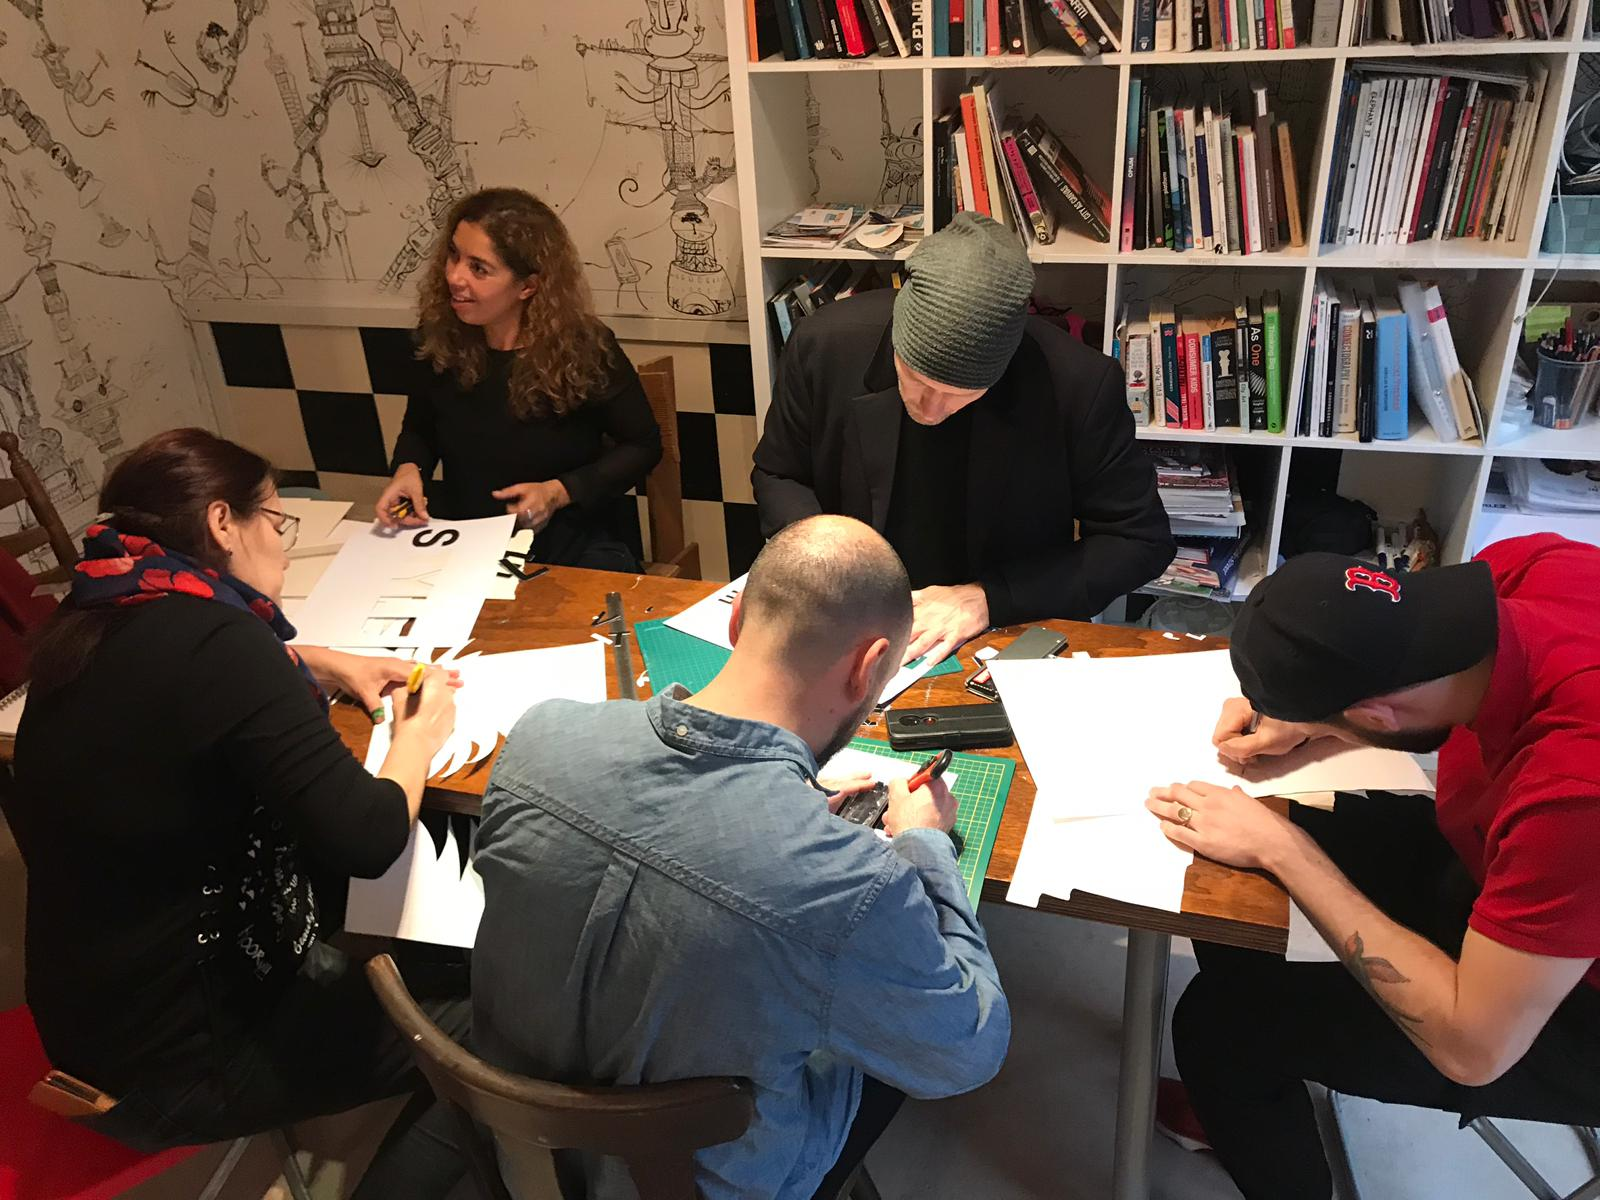 CitizenM 2019-10-27 at 13.03.40